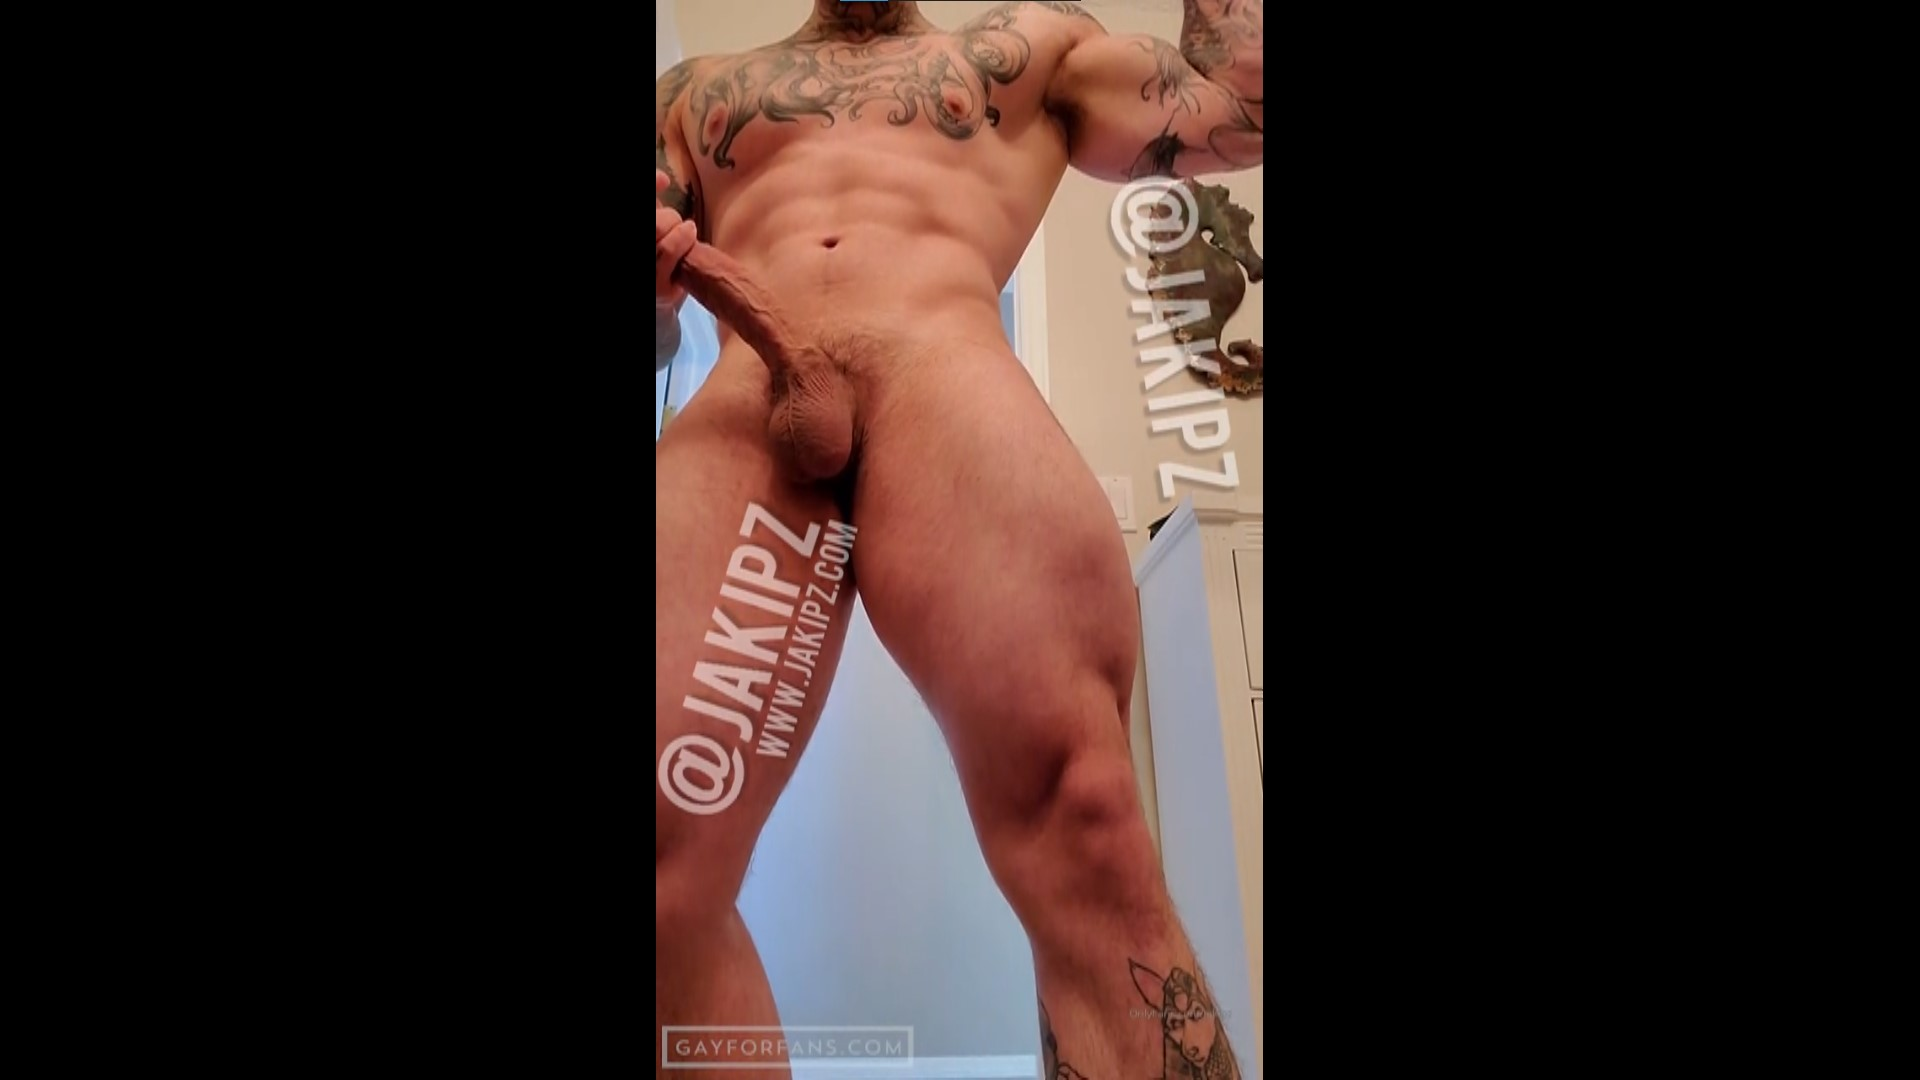 Playing with my balls and precum - Jakipz